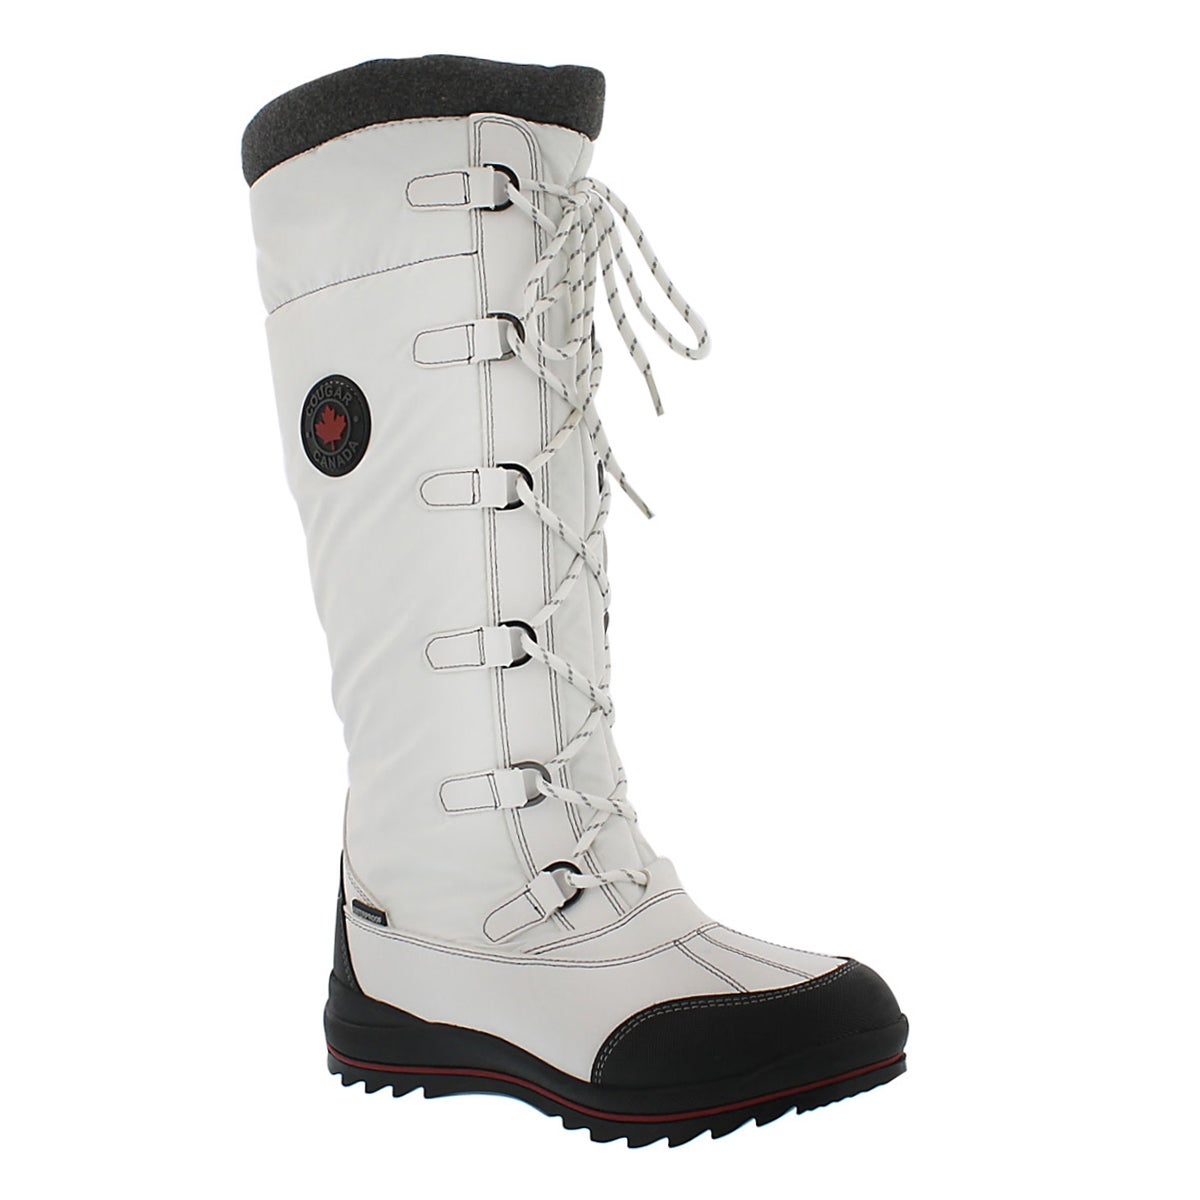 Women's CANUCK wht waterproof pull on winter boots